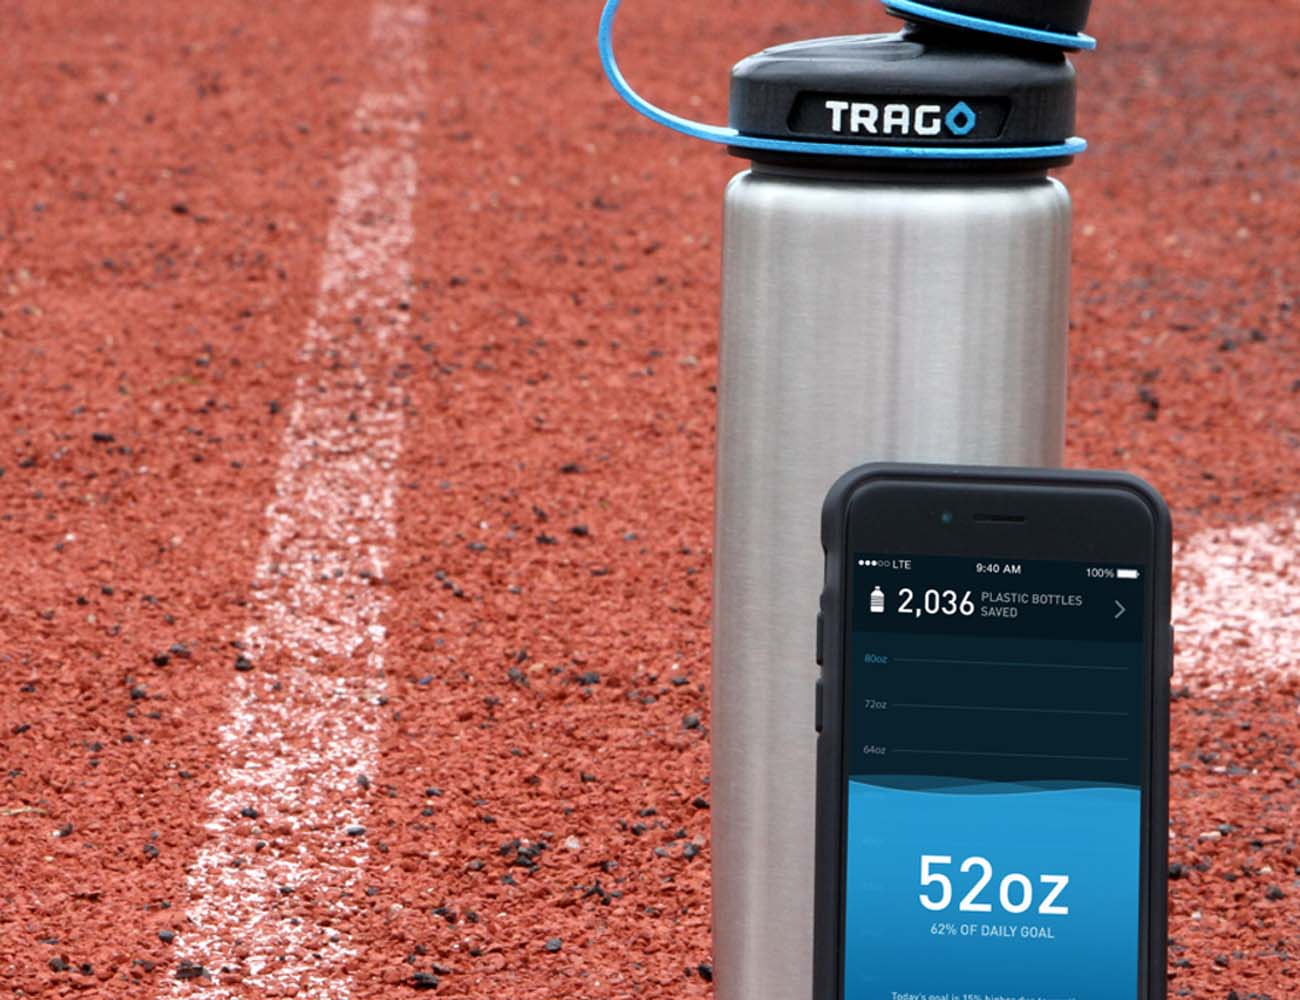 Trago – The World's First Smart Water Bottle